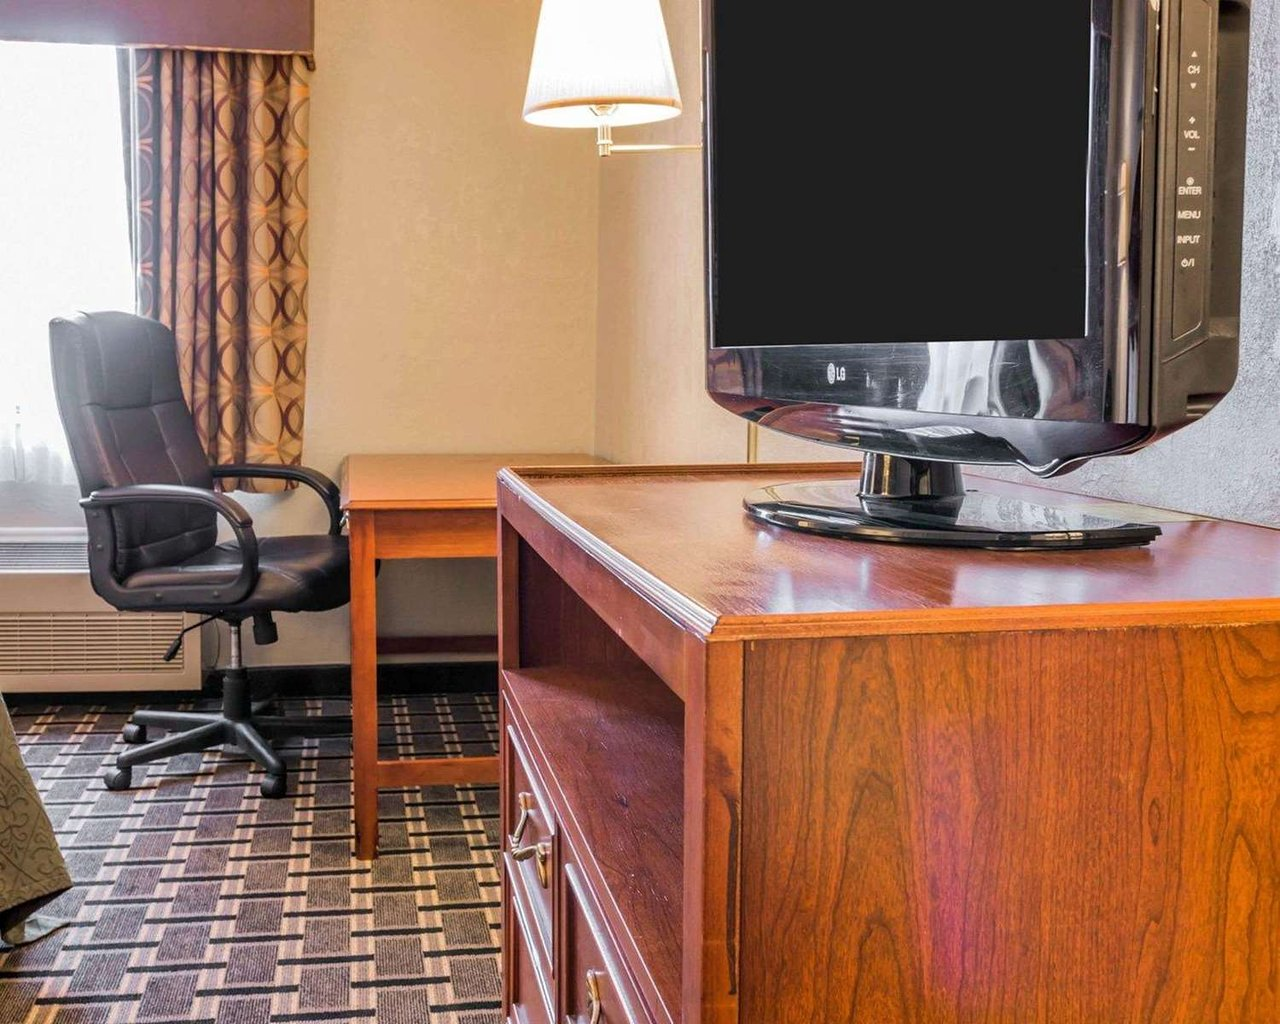 QUALITY INN GRAND RAPIDS NORTH - WALKER - Updated 2020 Prices, Hotel  Reviews, and Photos (MI) - Tripadvisor